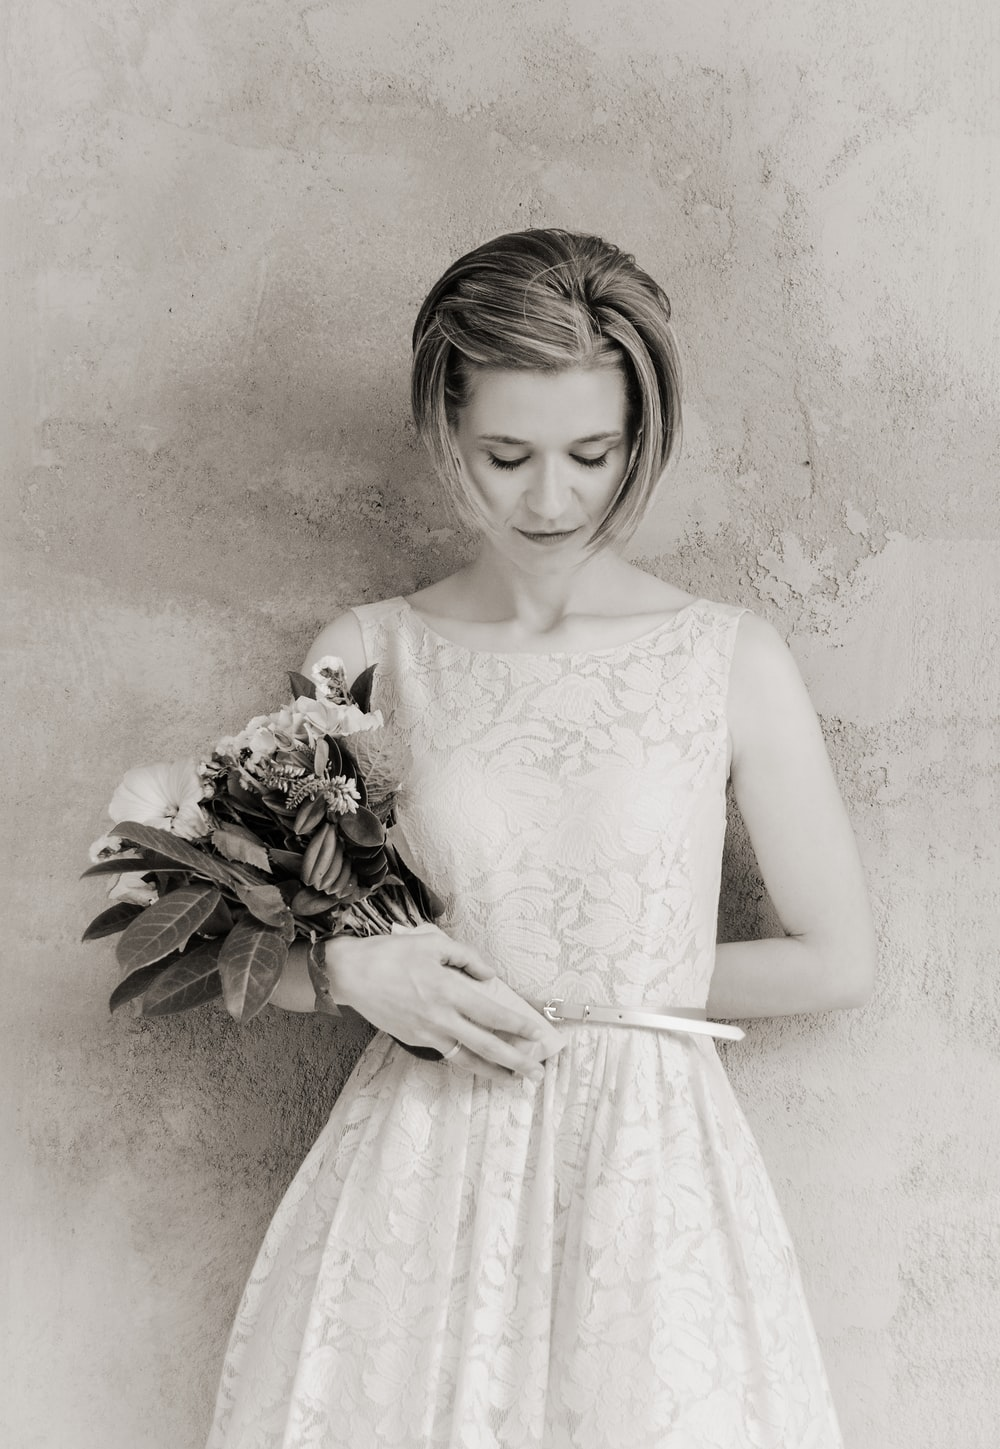 woman in floral dress holding bouquet of flower